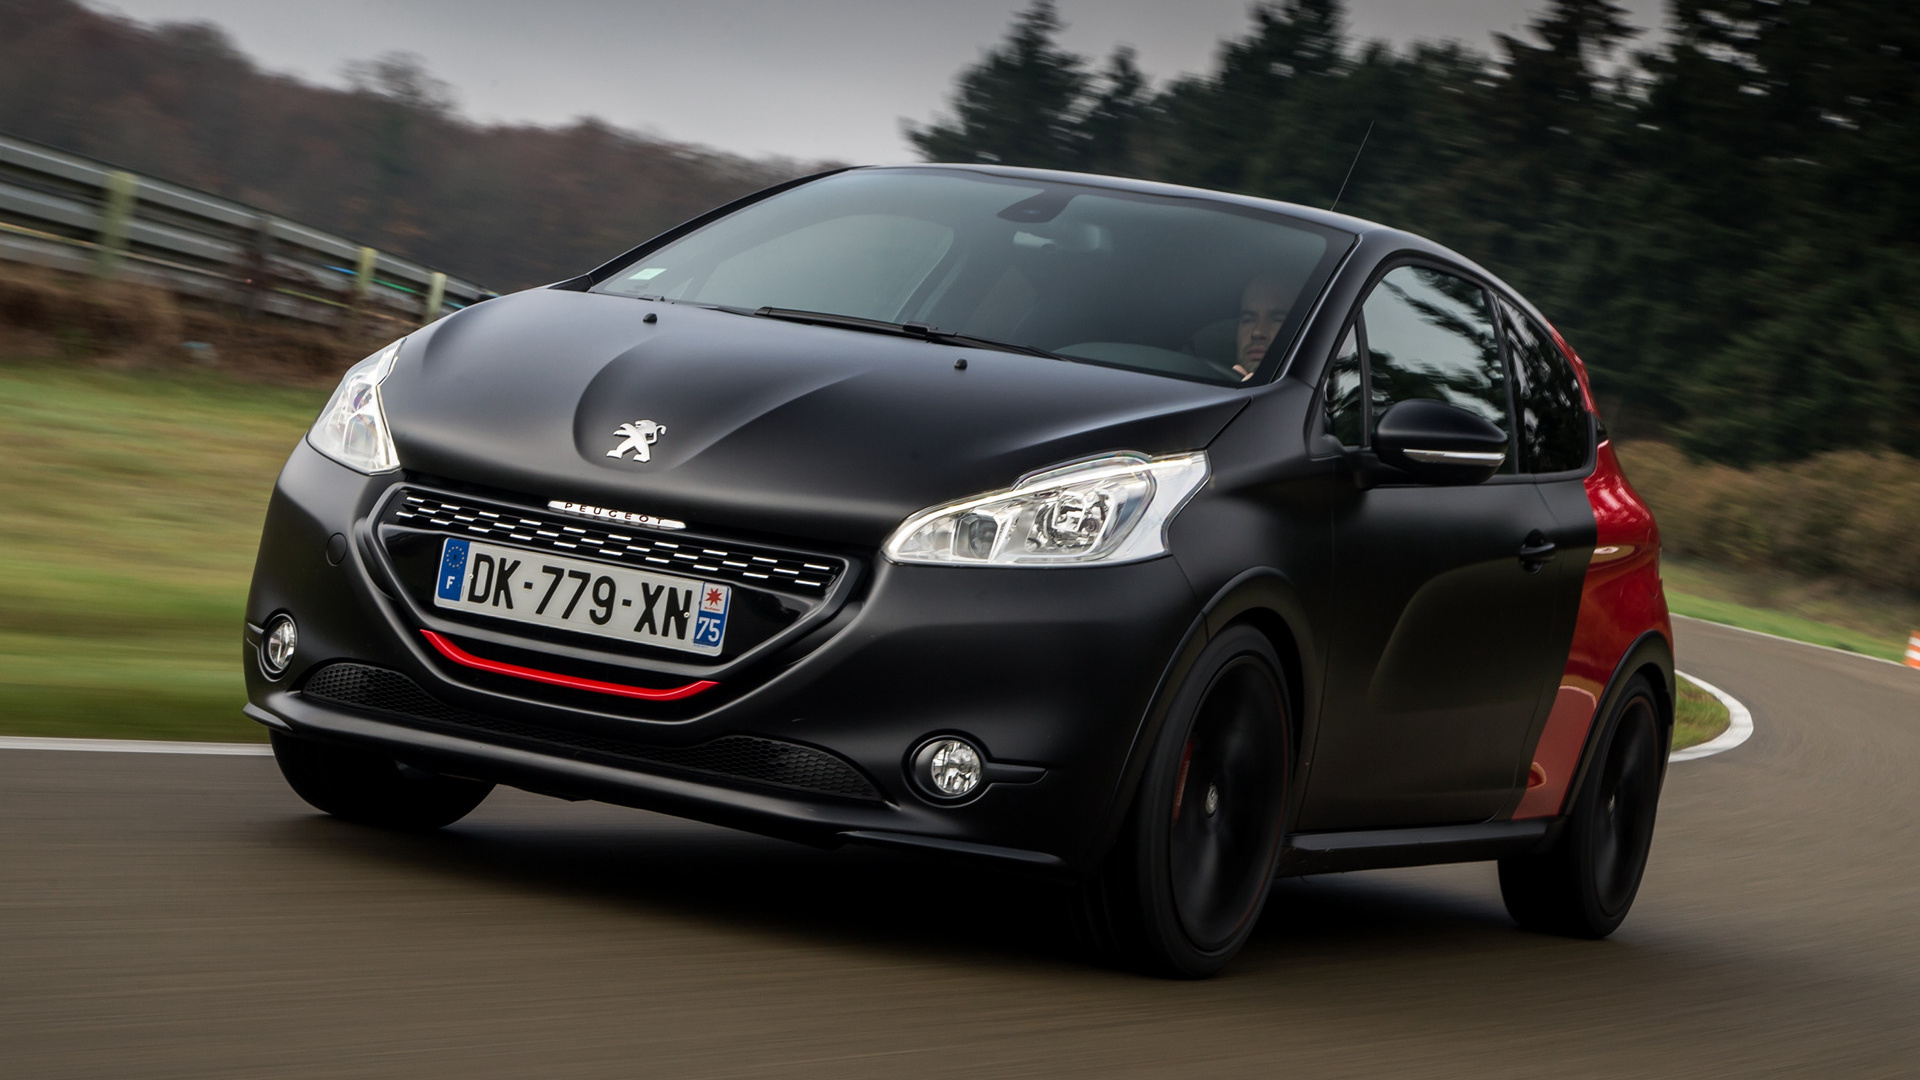 Volvo Wallpaper Hd Peugeot 208 Gti 30th Anniversary 2014 Wallpapers And Hd